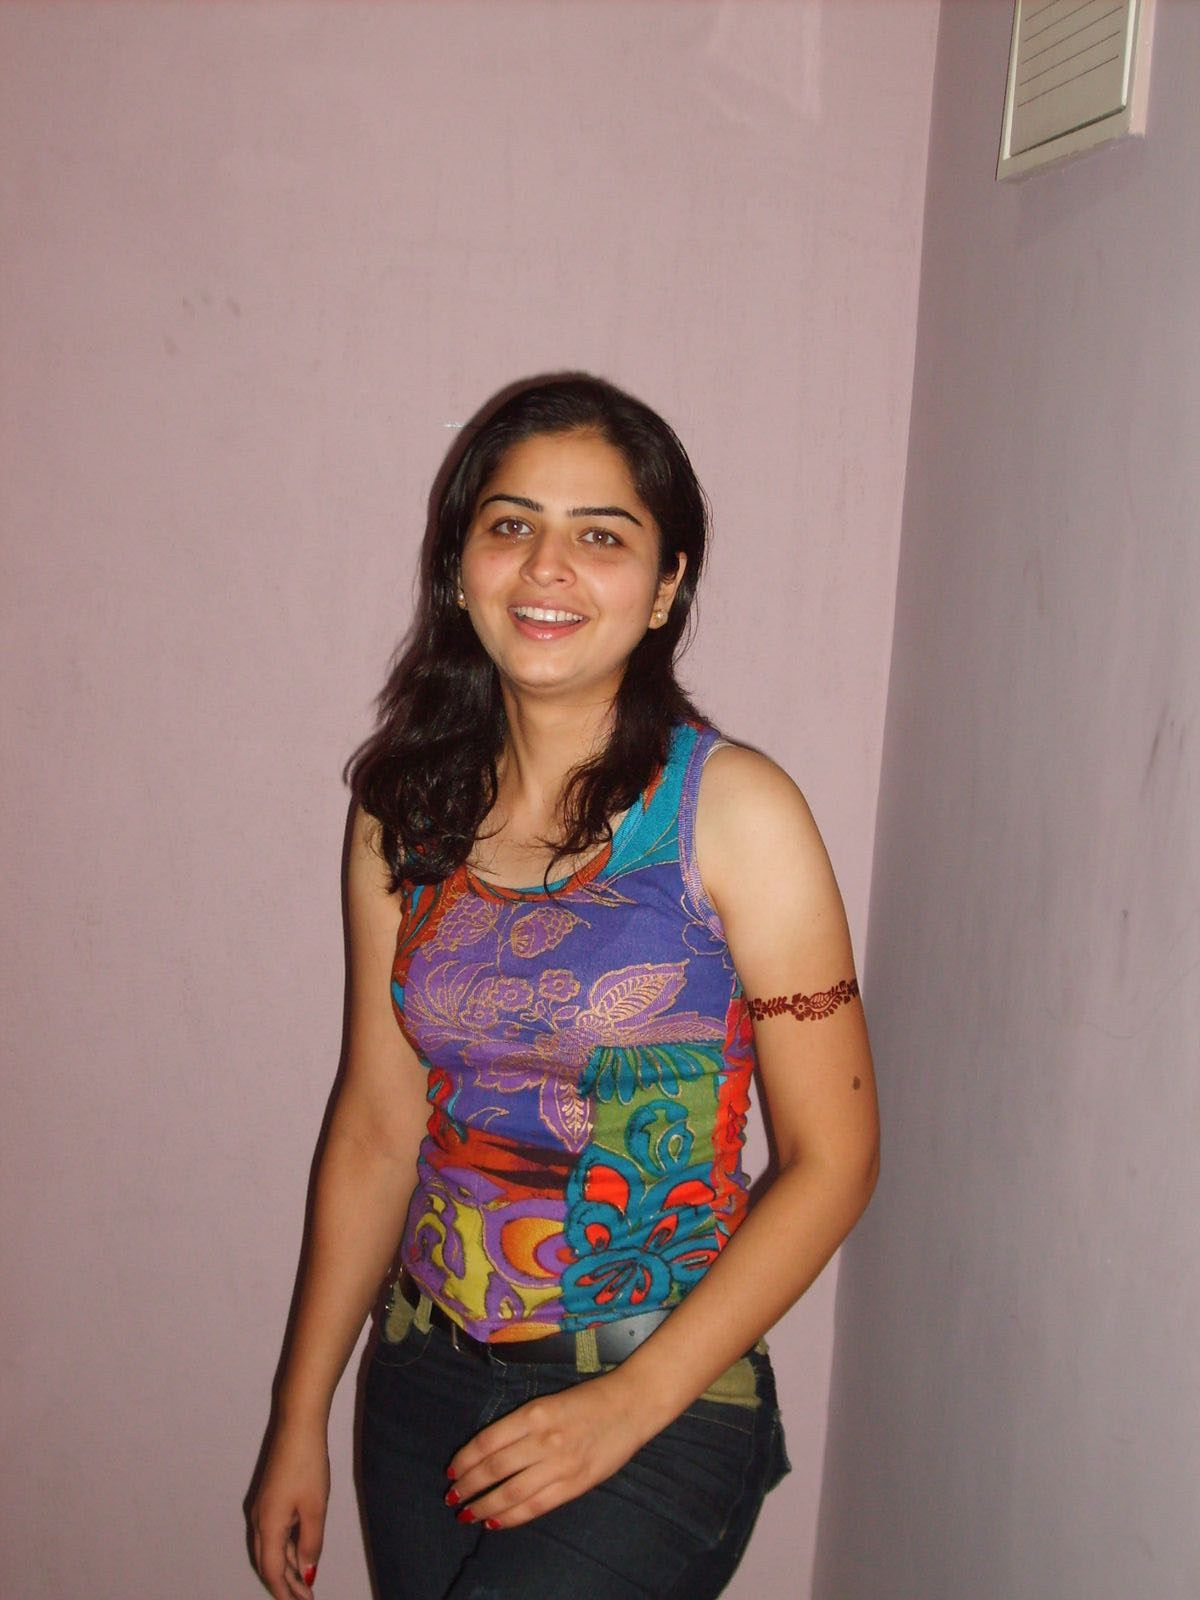 friends for dating in bangalore Bangalore city senior dating in india seeking adventurous, well plac - i am an adventurous person, love driving and traveling i take great pain and pleasure in organizing parties and get all my friends together to celebrate just being together.